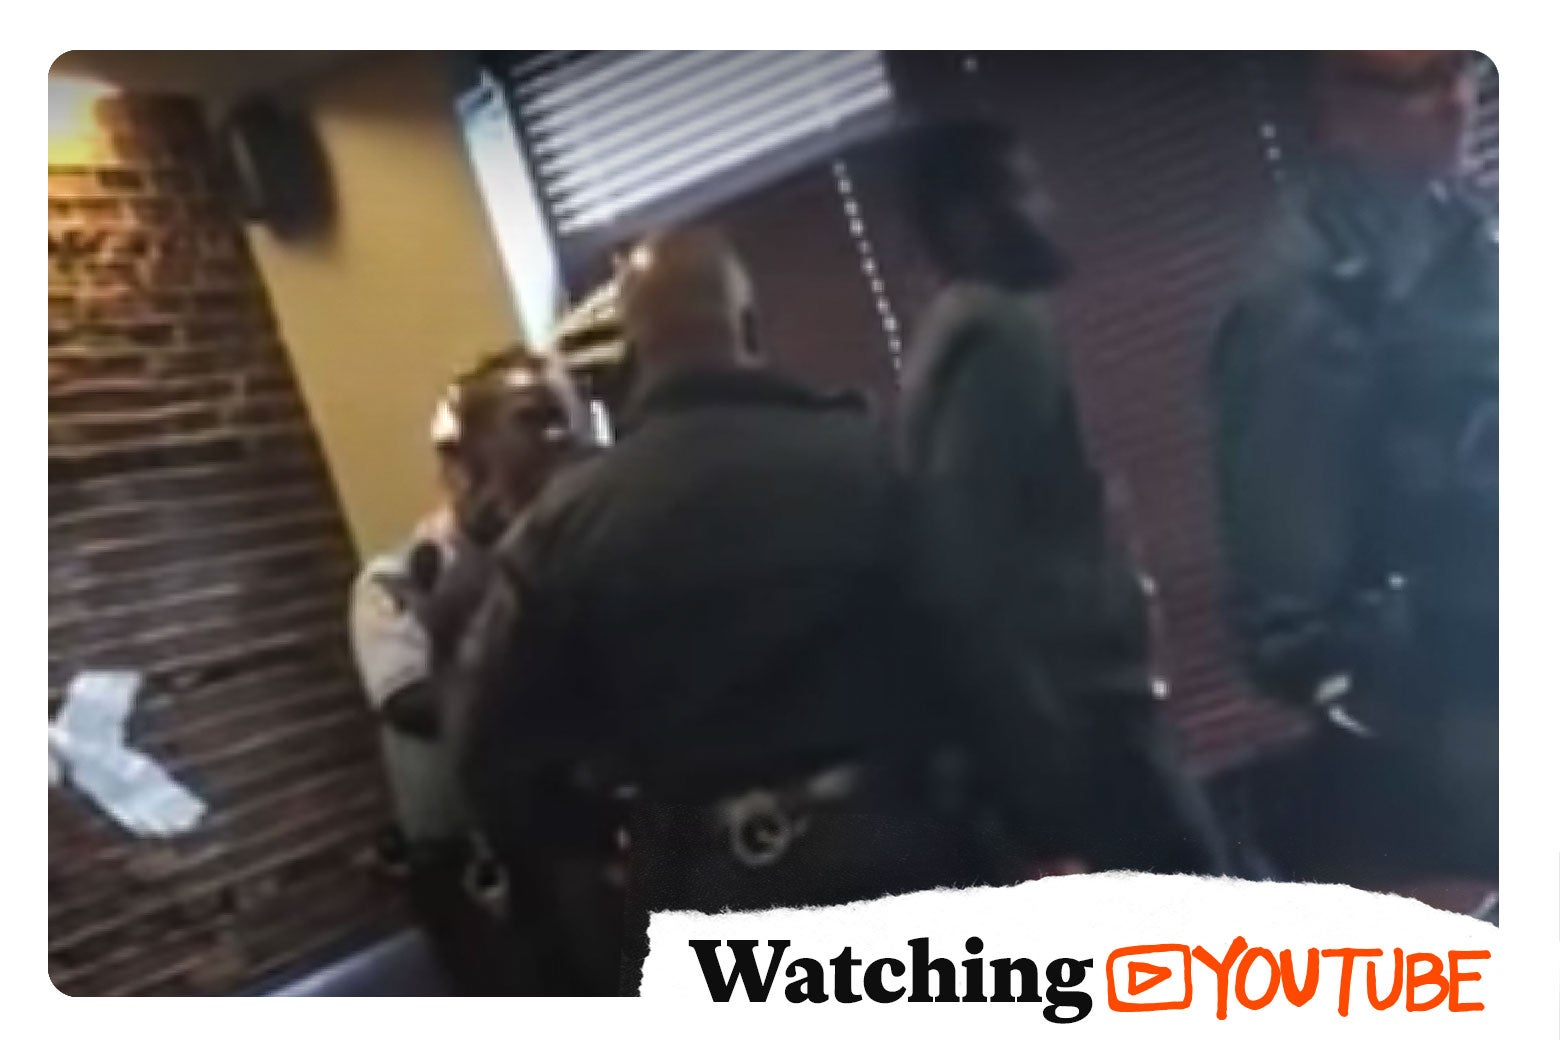 Photo illustration by Slate. Screen grab of the Starbucks incident from YouTube.